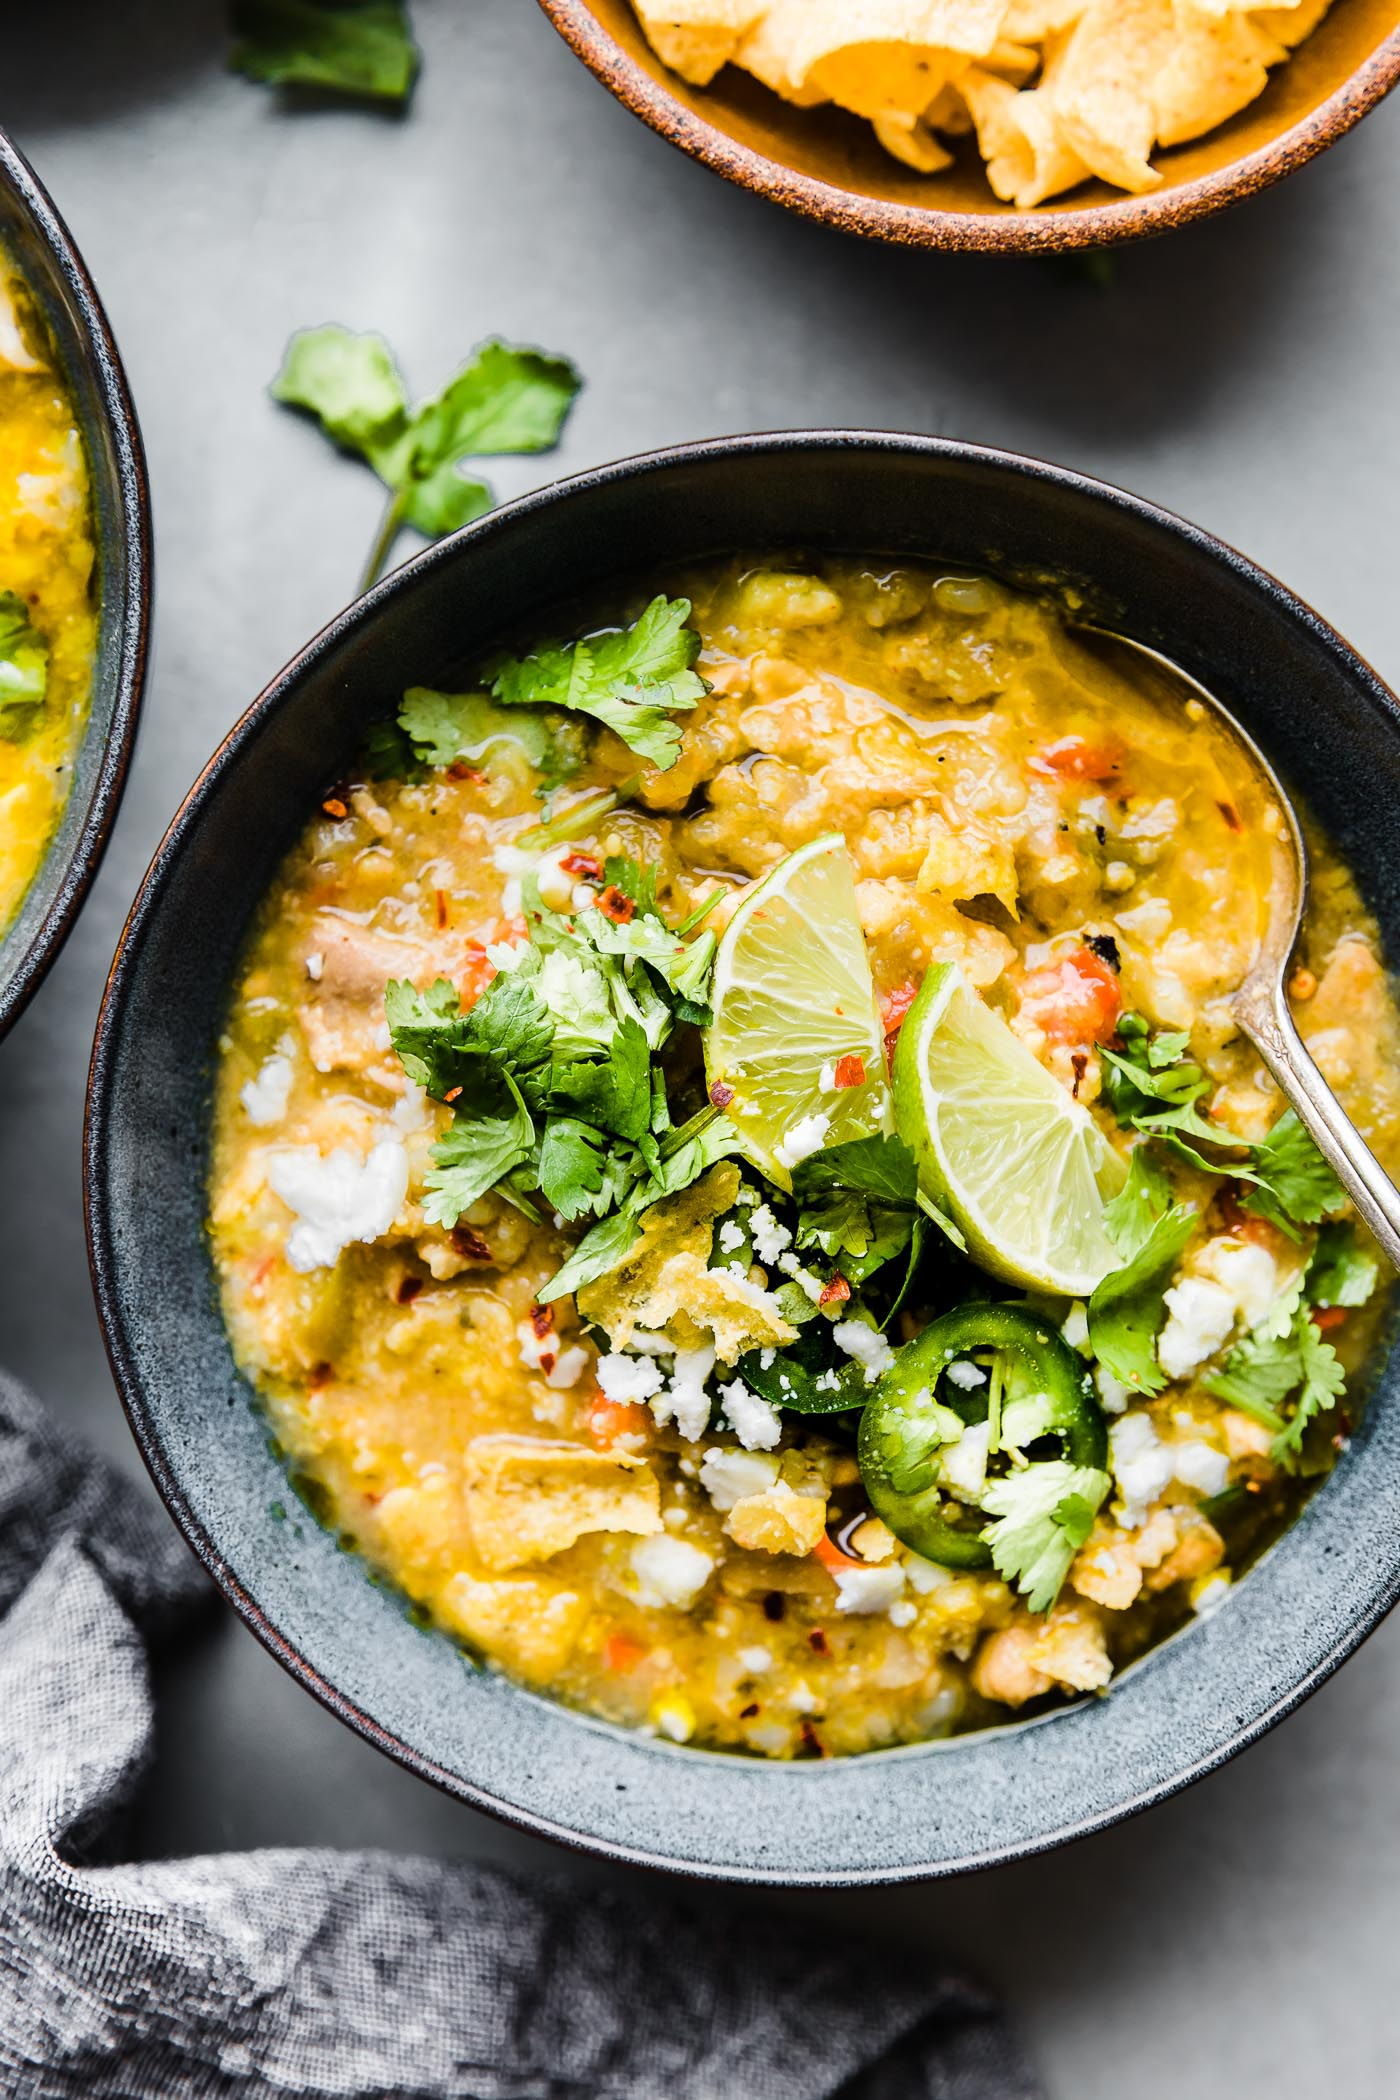 Instant Pot Tortilla Chicken Verde Chili (Stovetop Options)